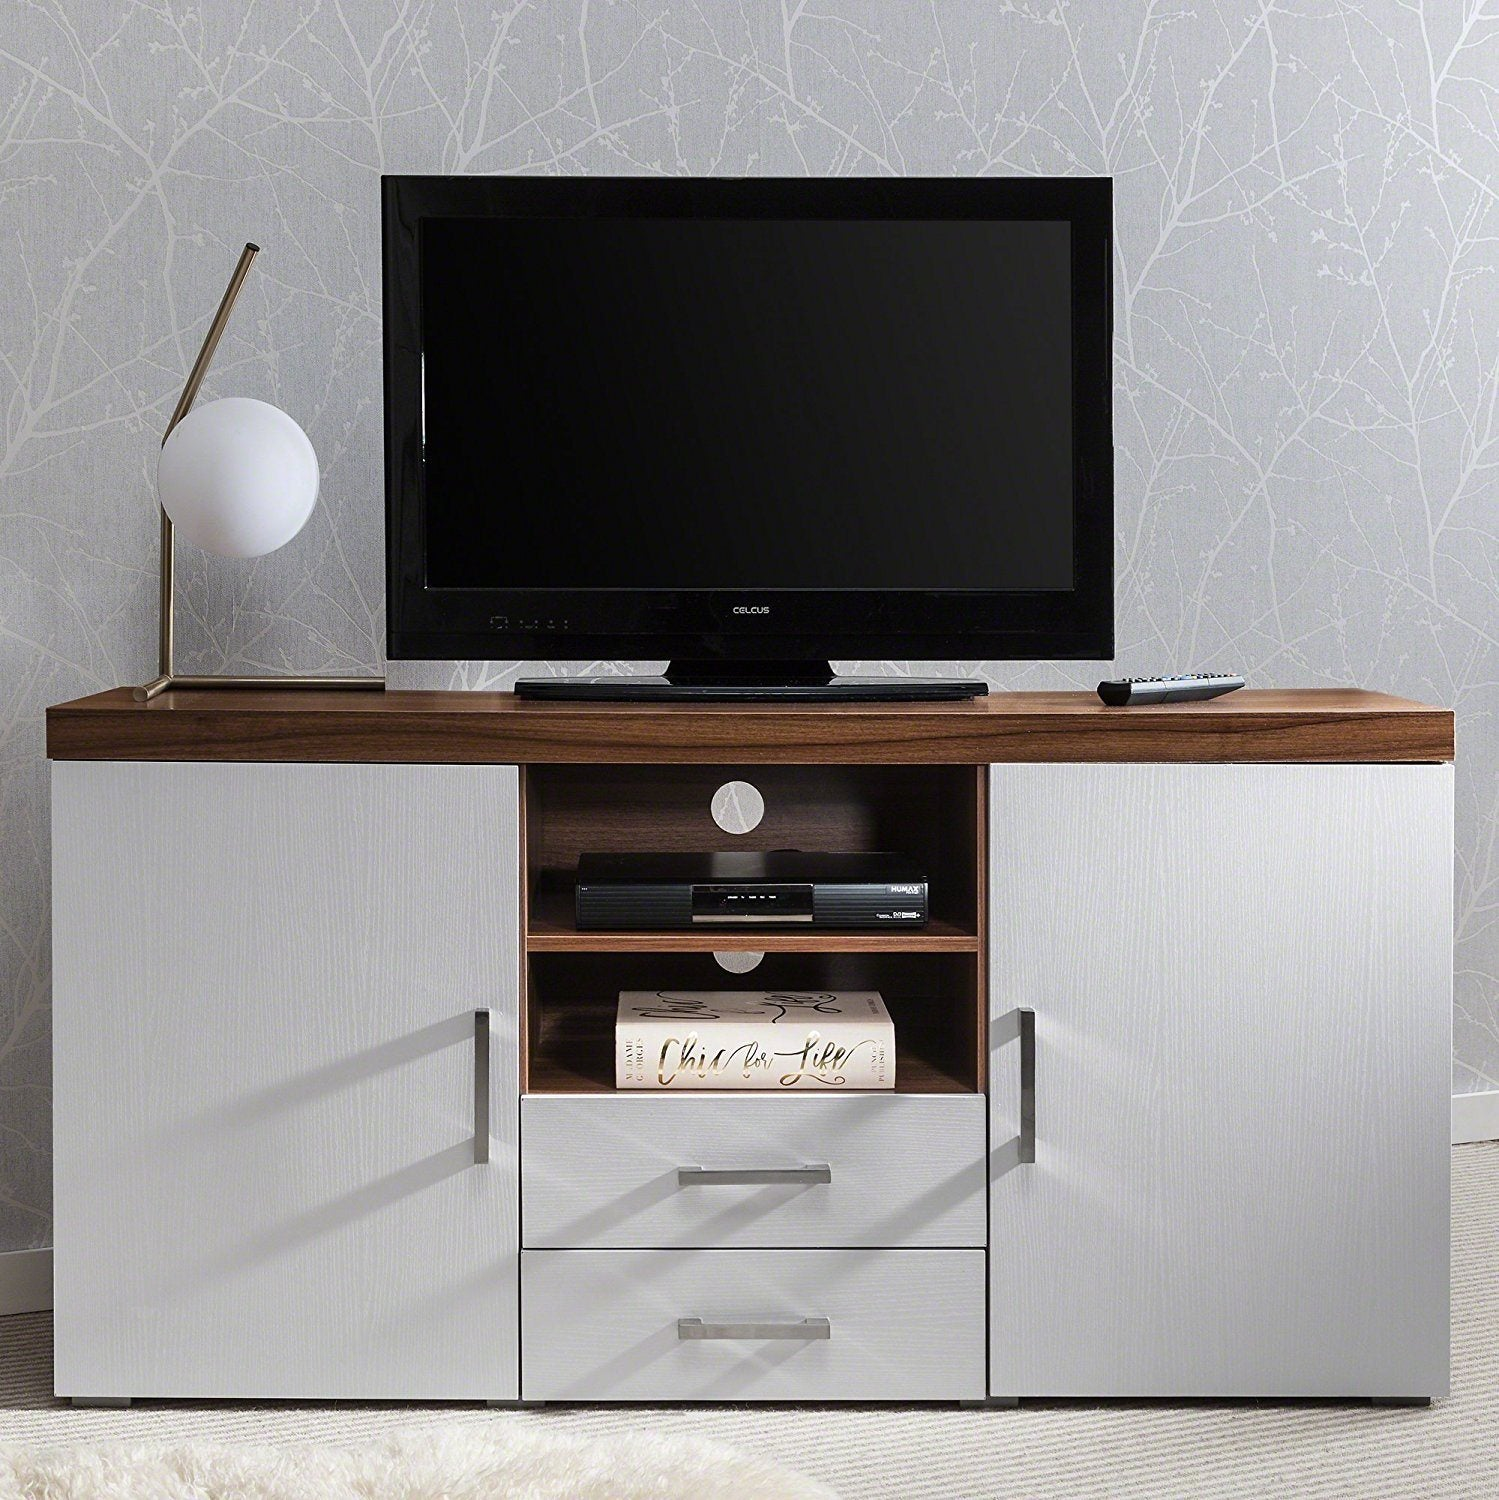 Credenza Mobile Porta Tv.Laura James Sideboard Tv Stand Cabinet With Drawer And Shelves Walnu